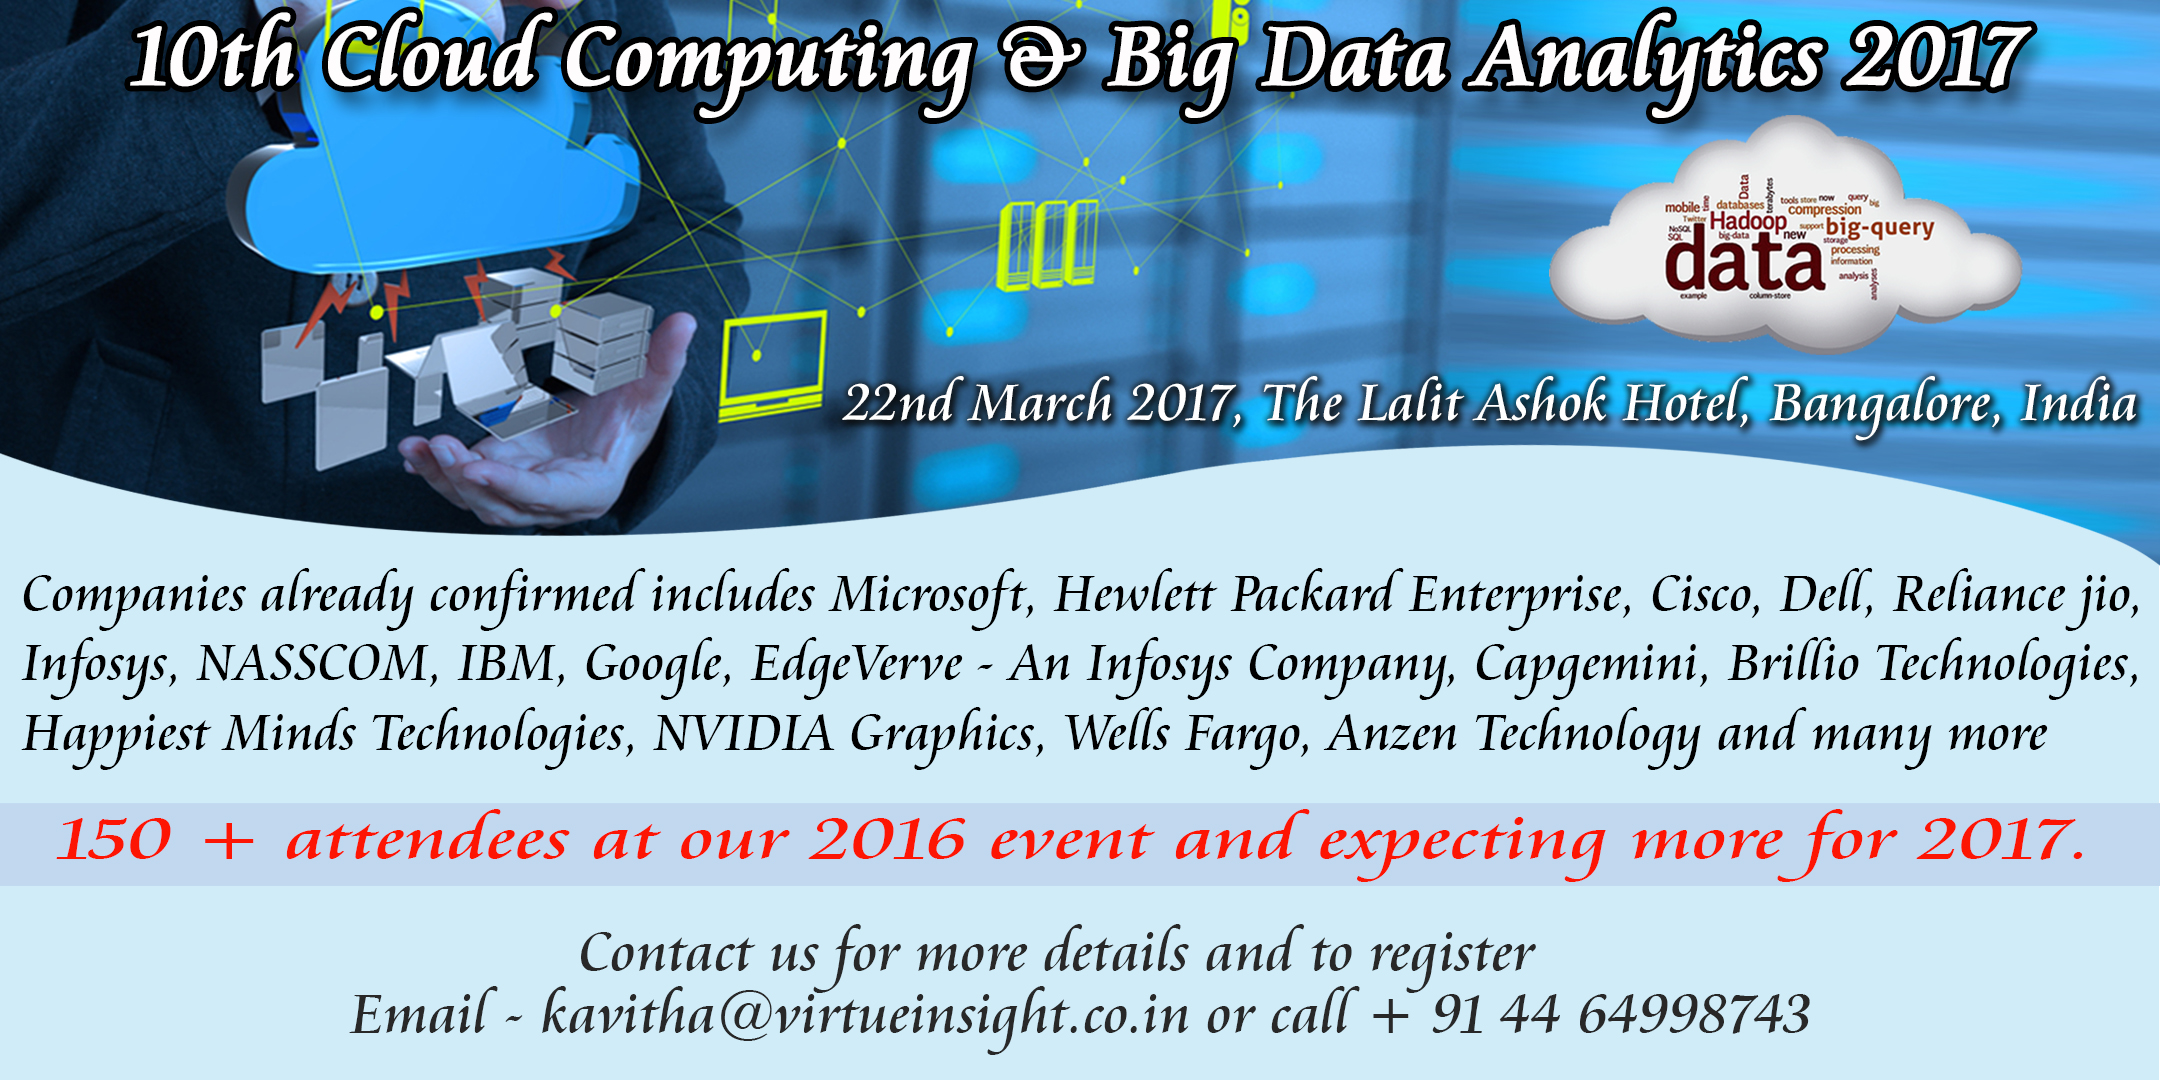 10th Annual Cloud Computing & Big Data Analytics 2017